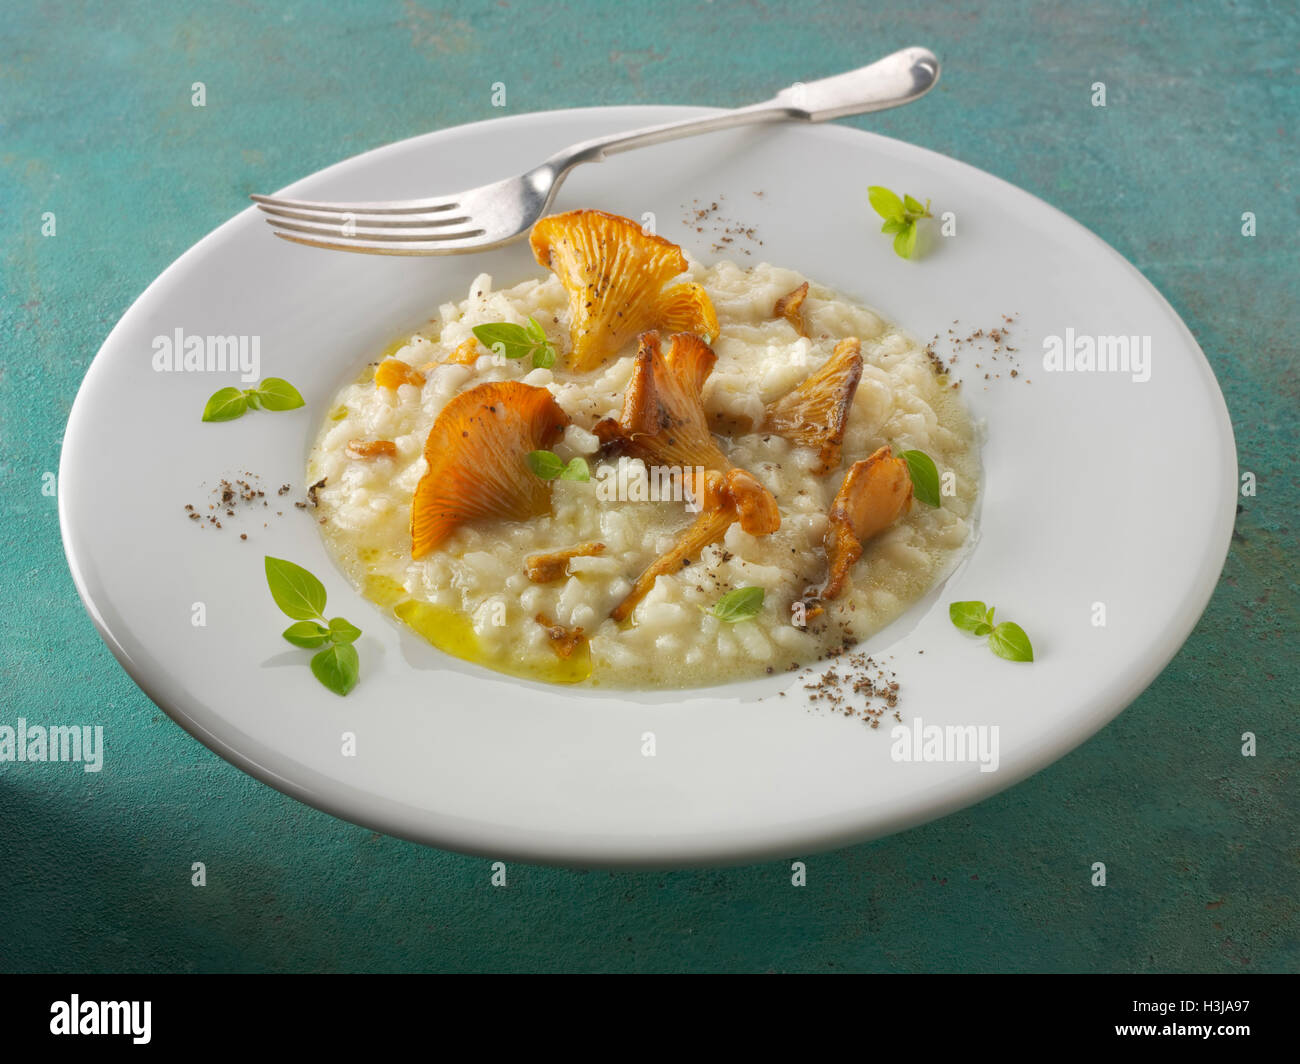 Wiild organic chanterelle or girolle Mushrooms (Cantharellus cibarius) or sauteed in butter and herbs risotto - Stock Image